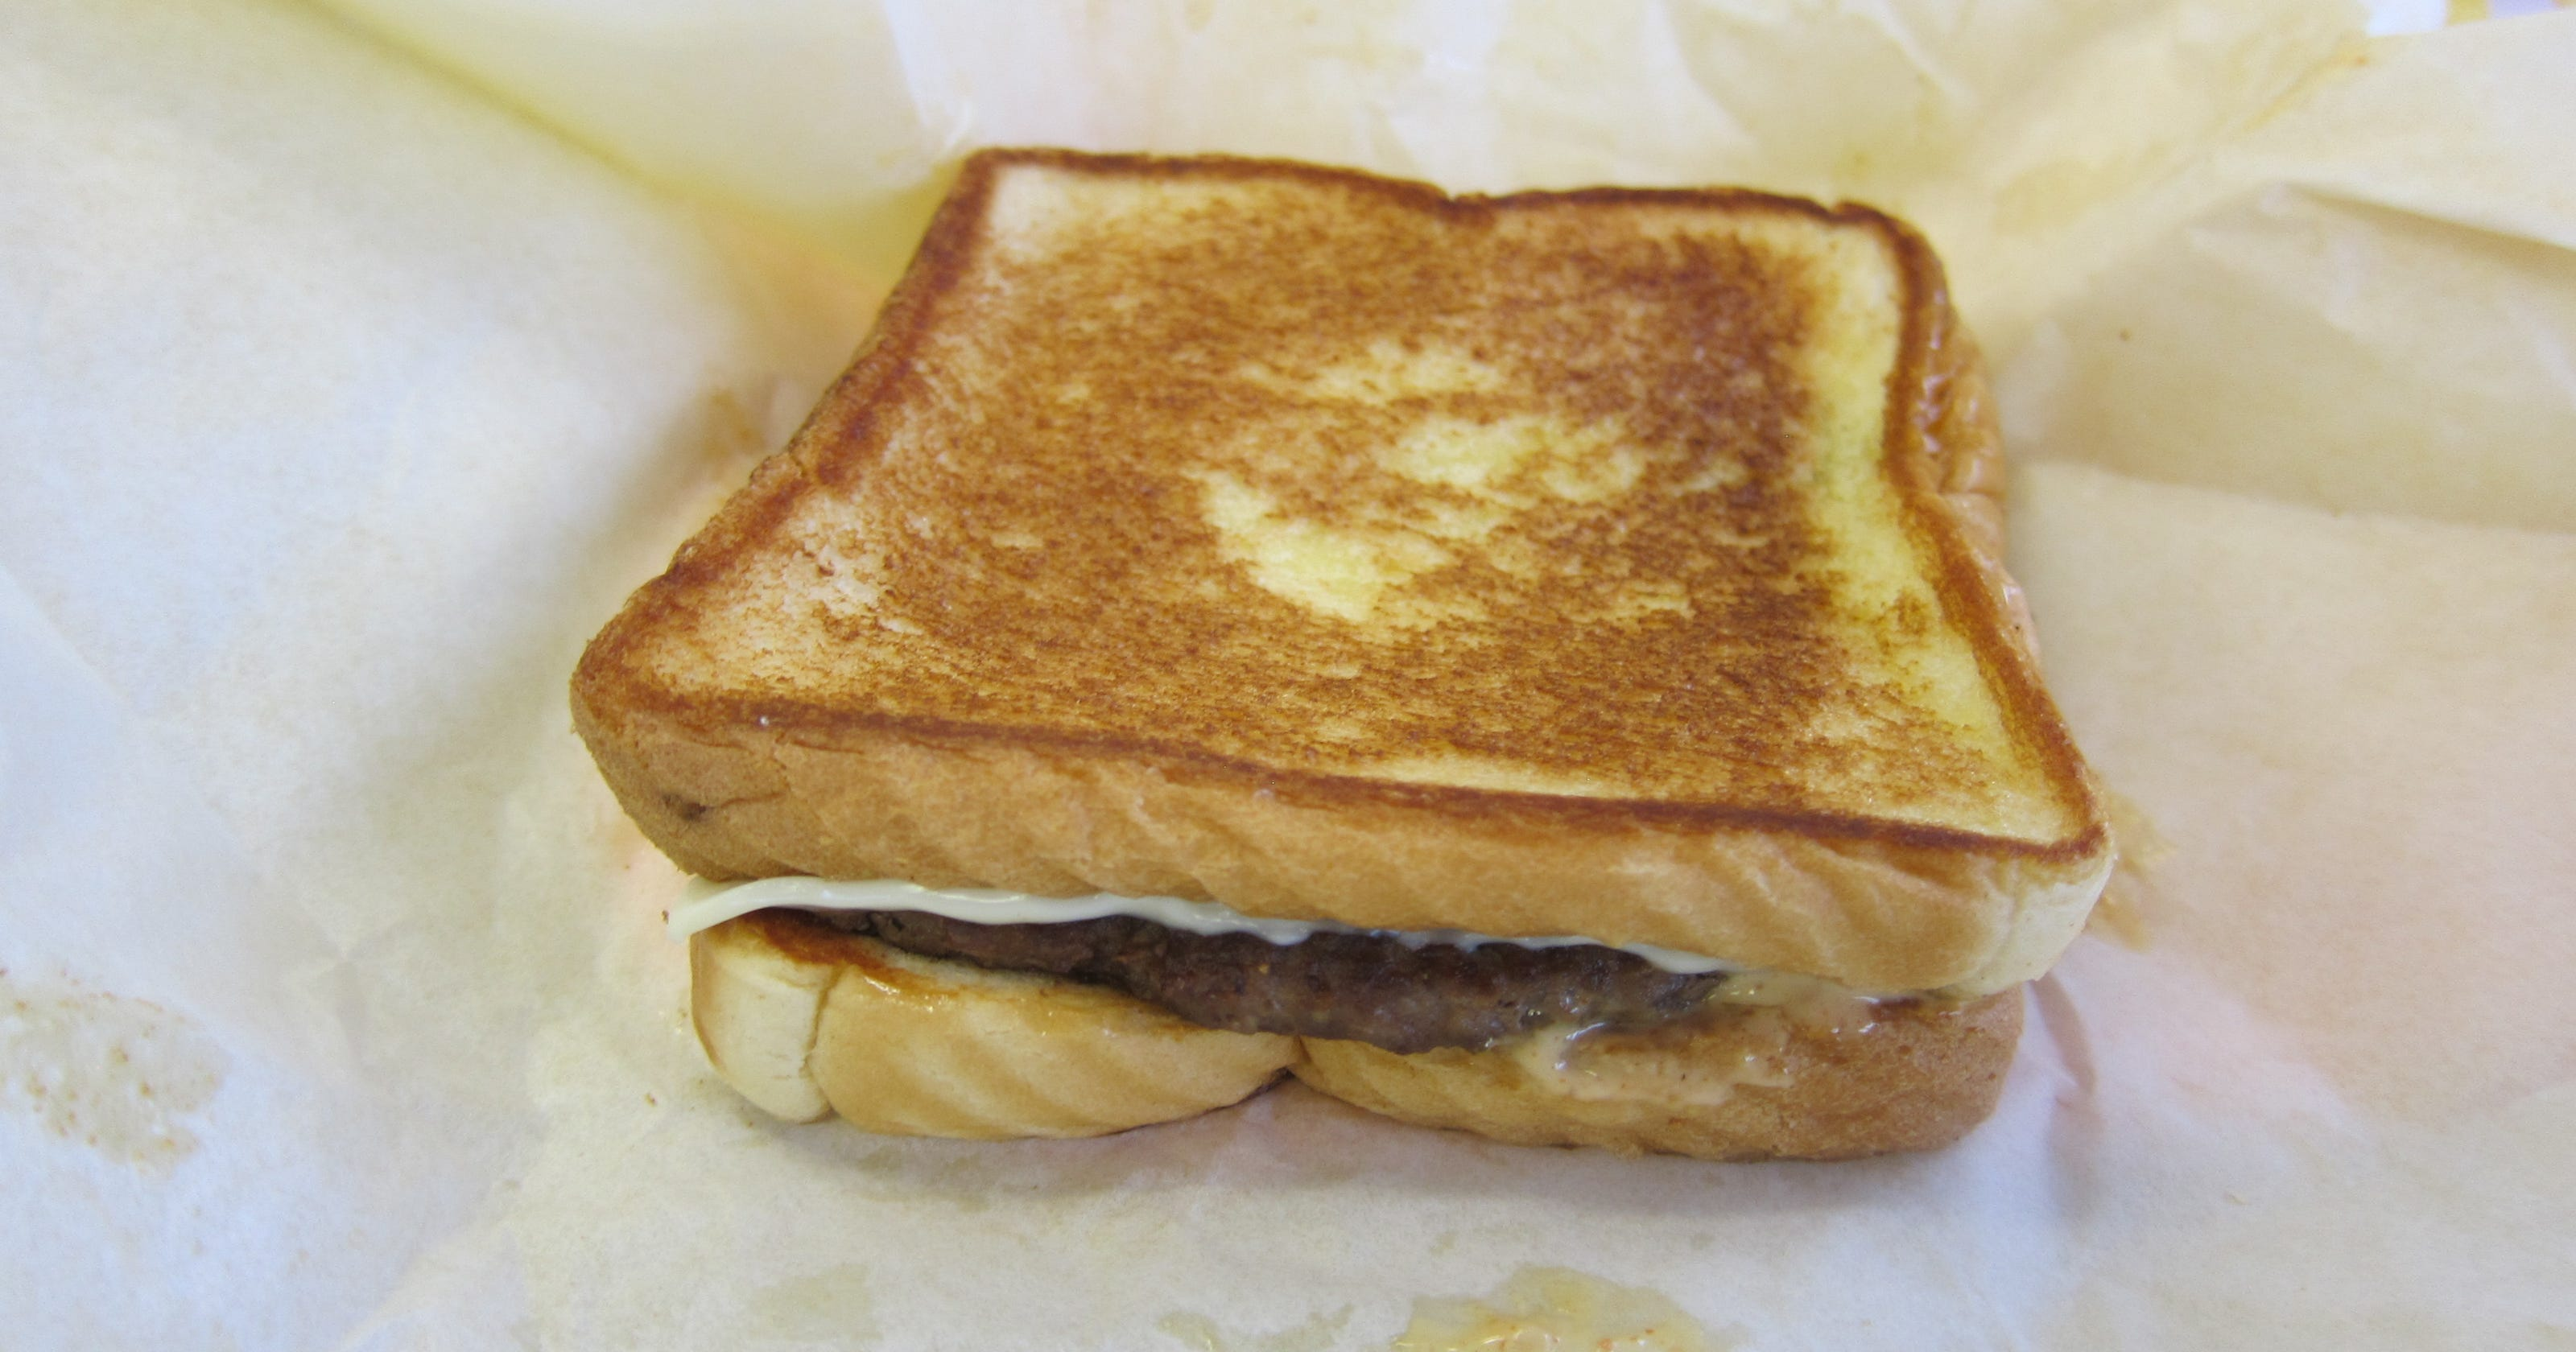 Regional fast food: Why Whataburger is worth a stop